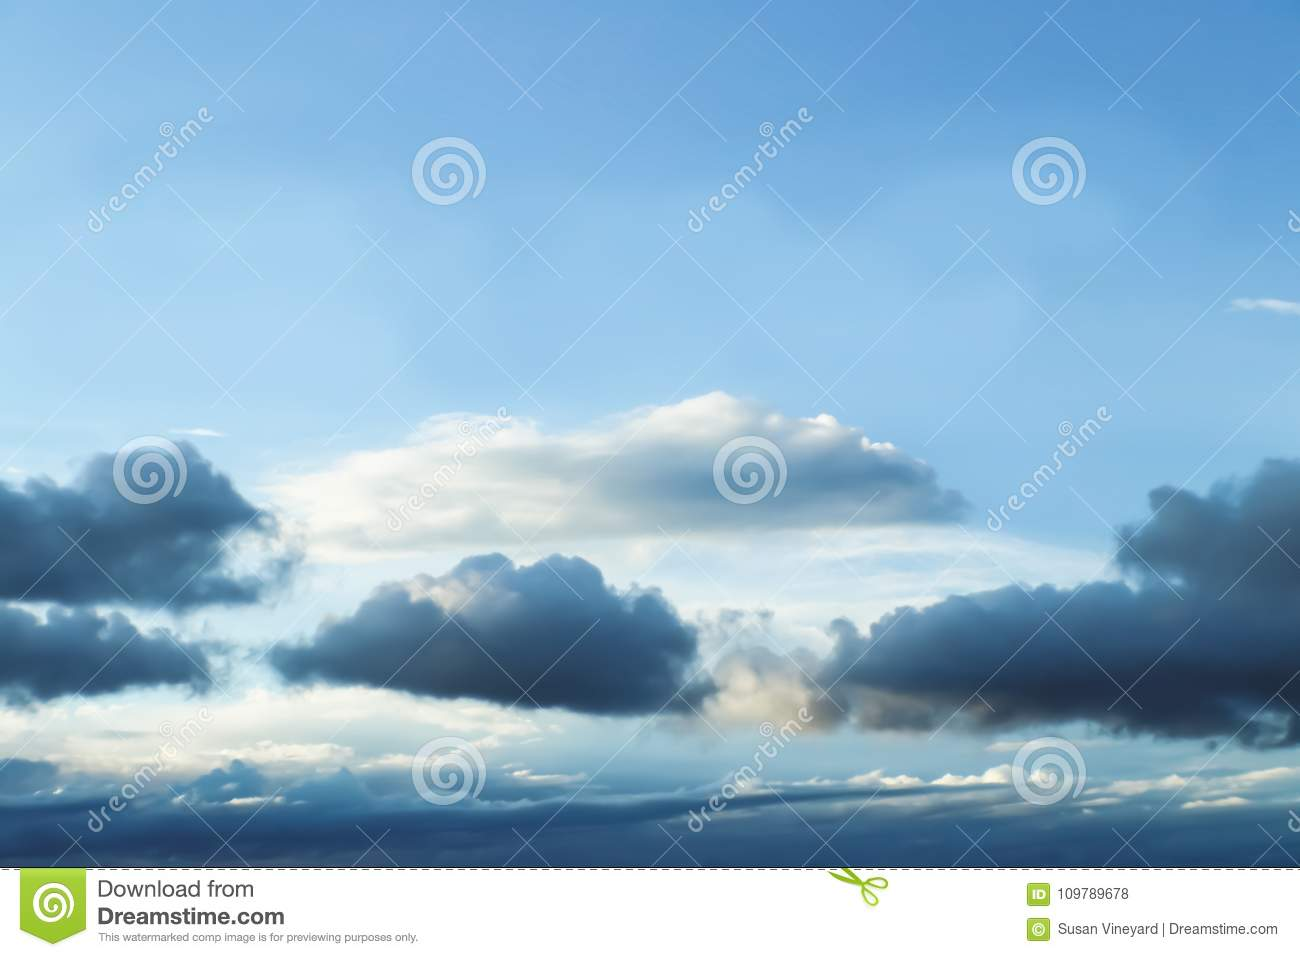 Cloudscape - Blue sky with layers of clouds near the bottom as a storm forms - no land - background or room for text